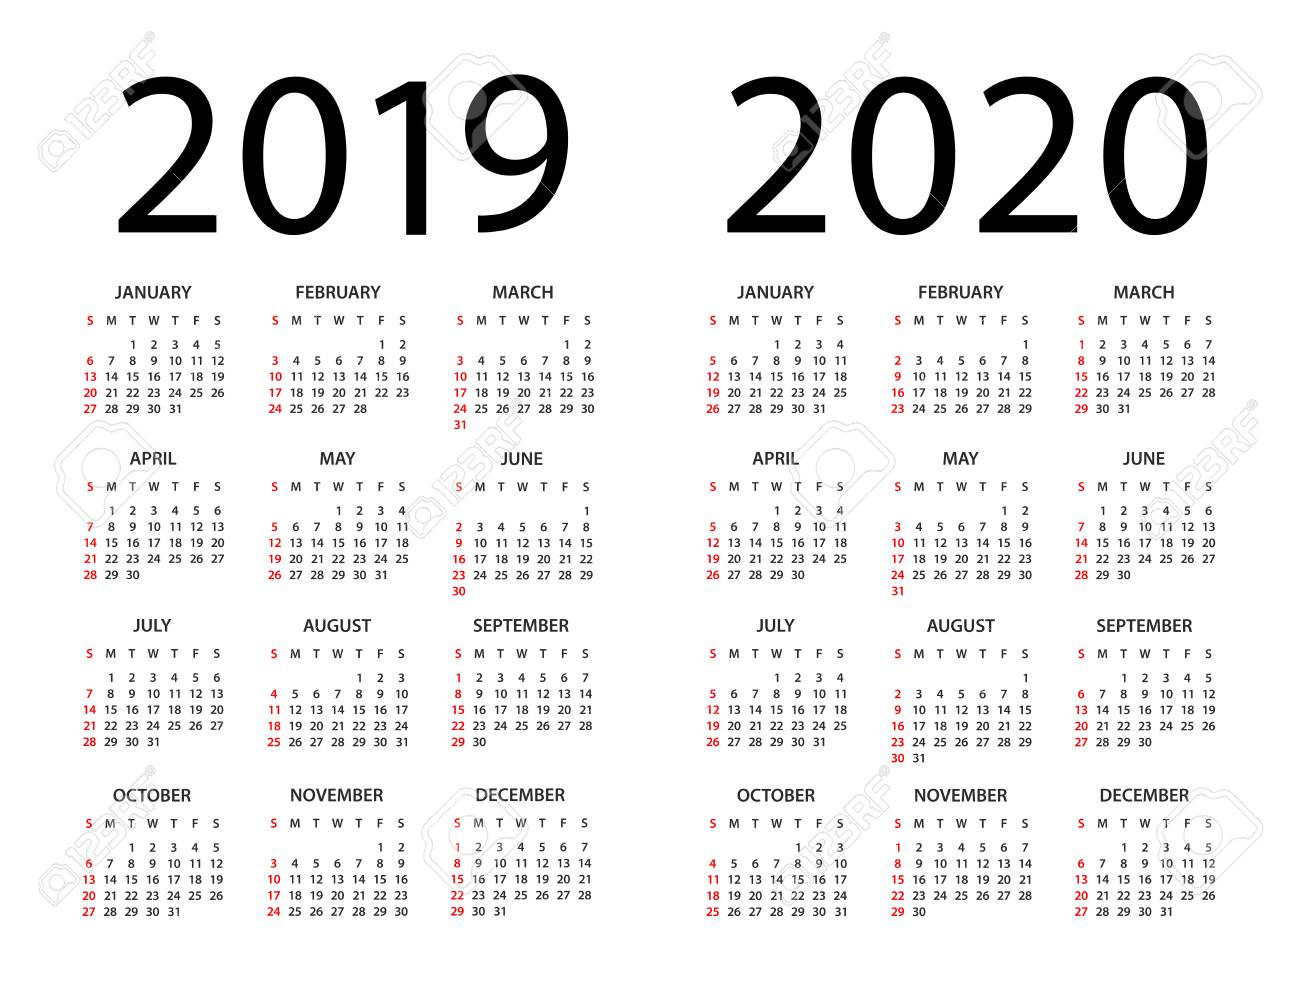 Calendar 2020 Year Calendar 2019 2020 Year   Vector Illustration. Week Starts On